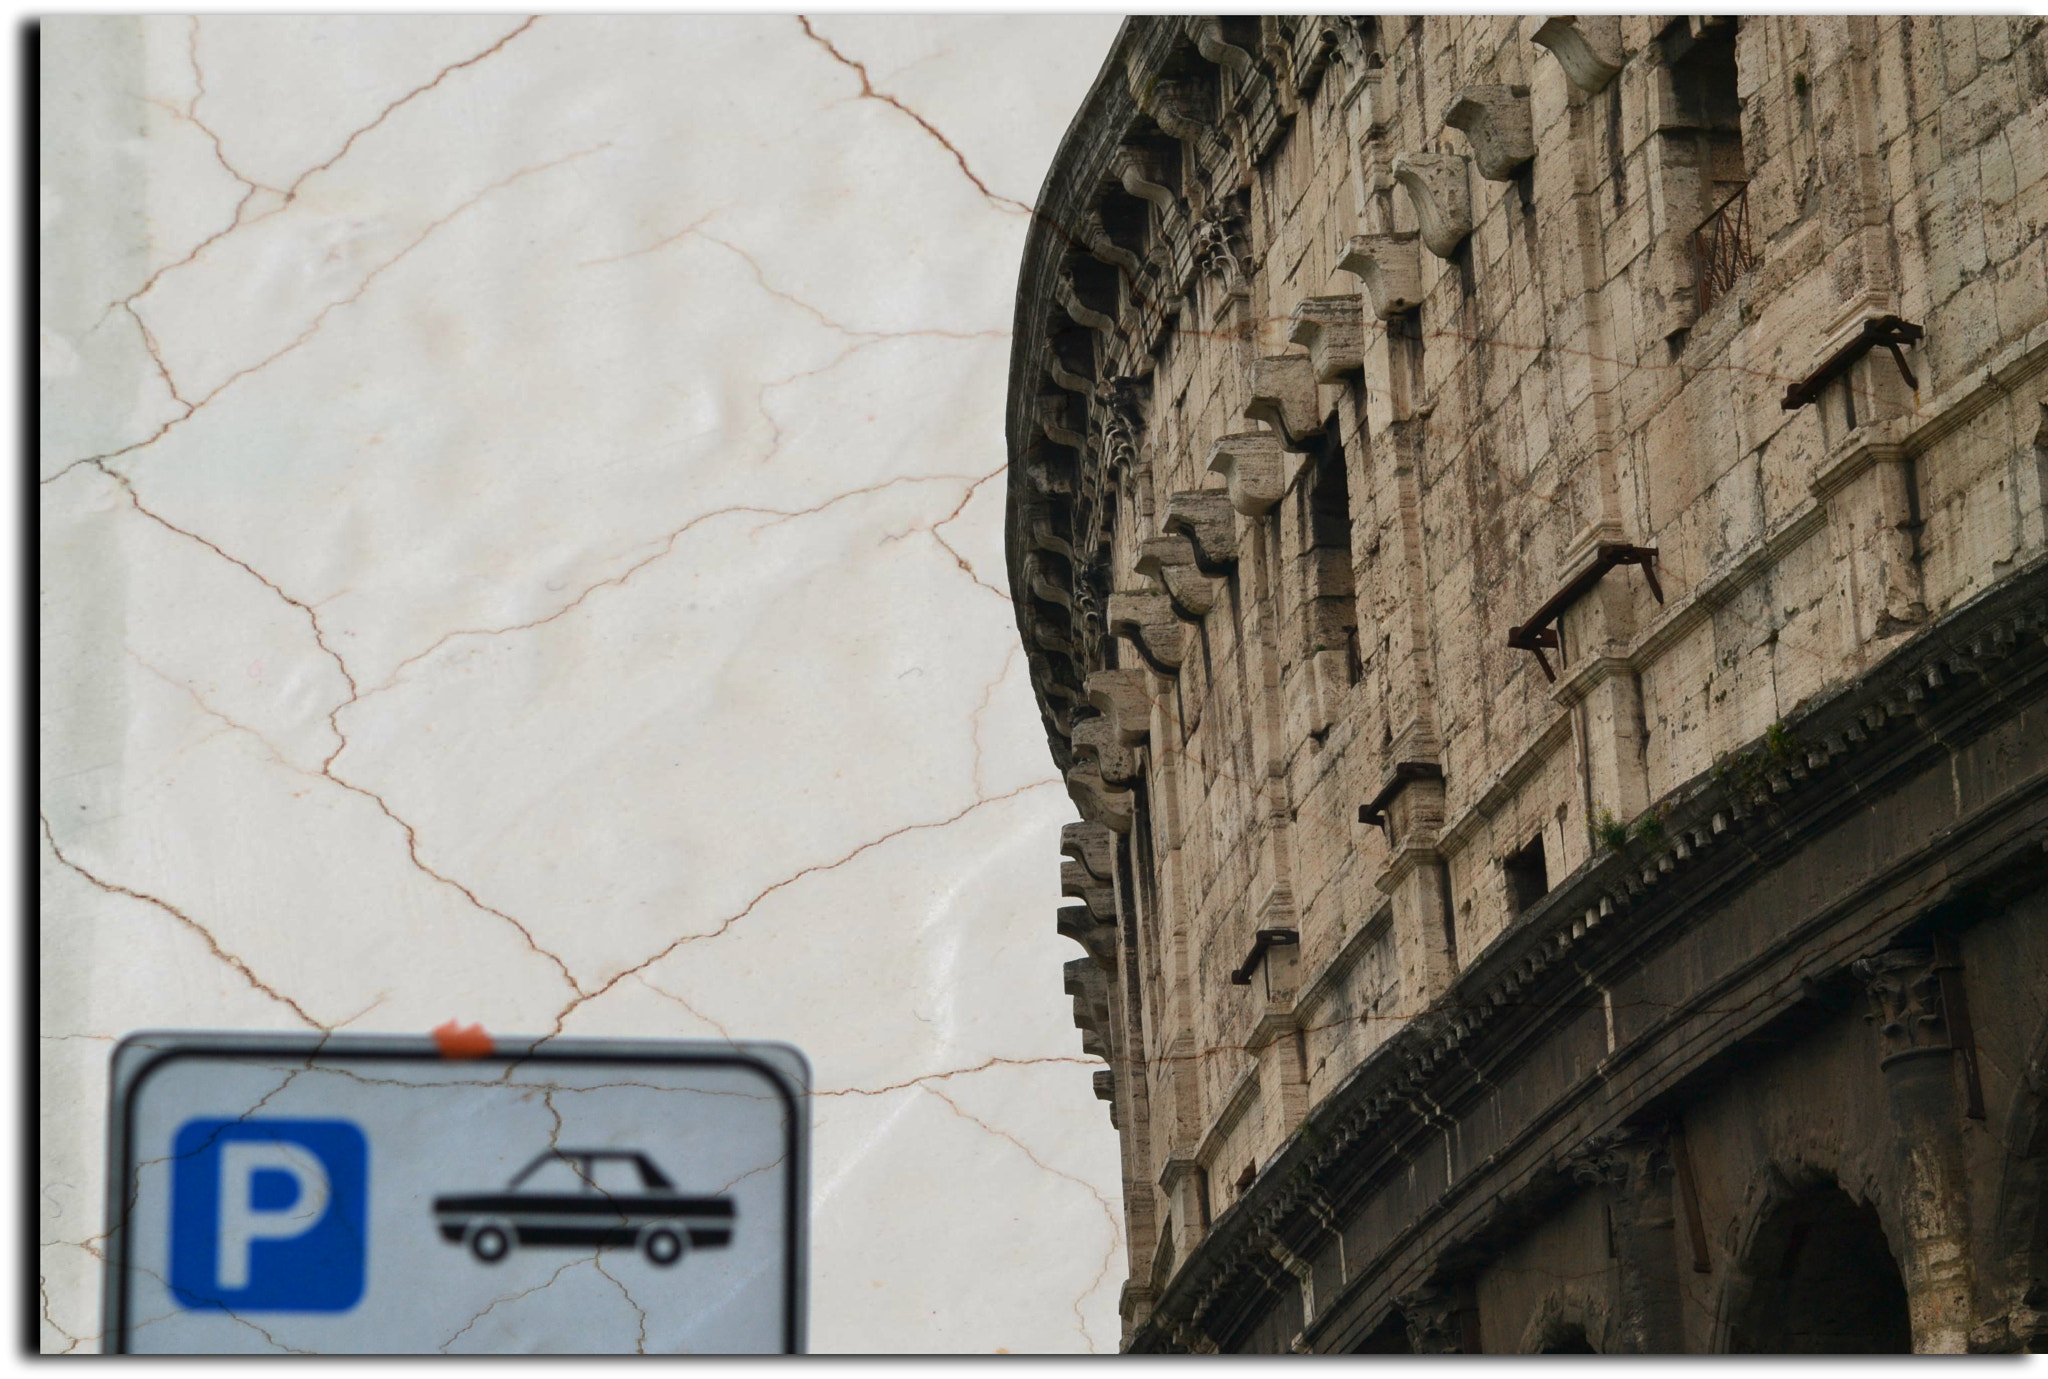 Photograph NO PARKING COLOSSEO by Luca Amerberg on 500px